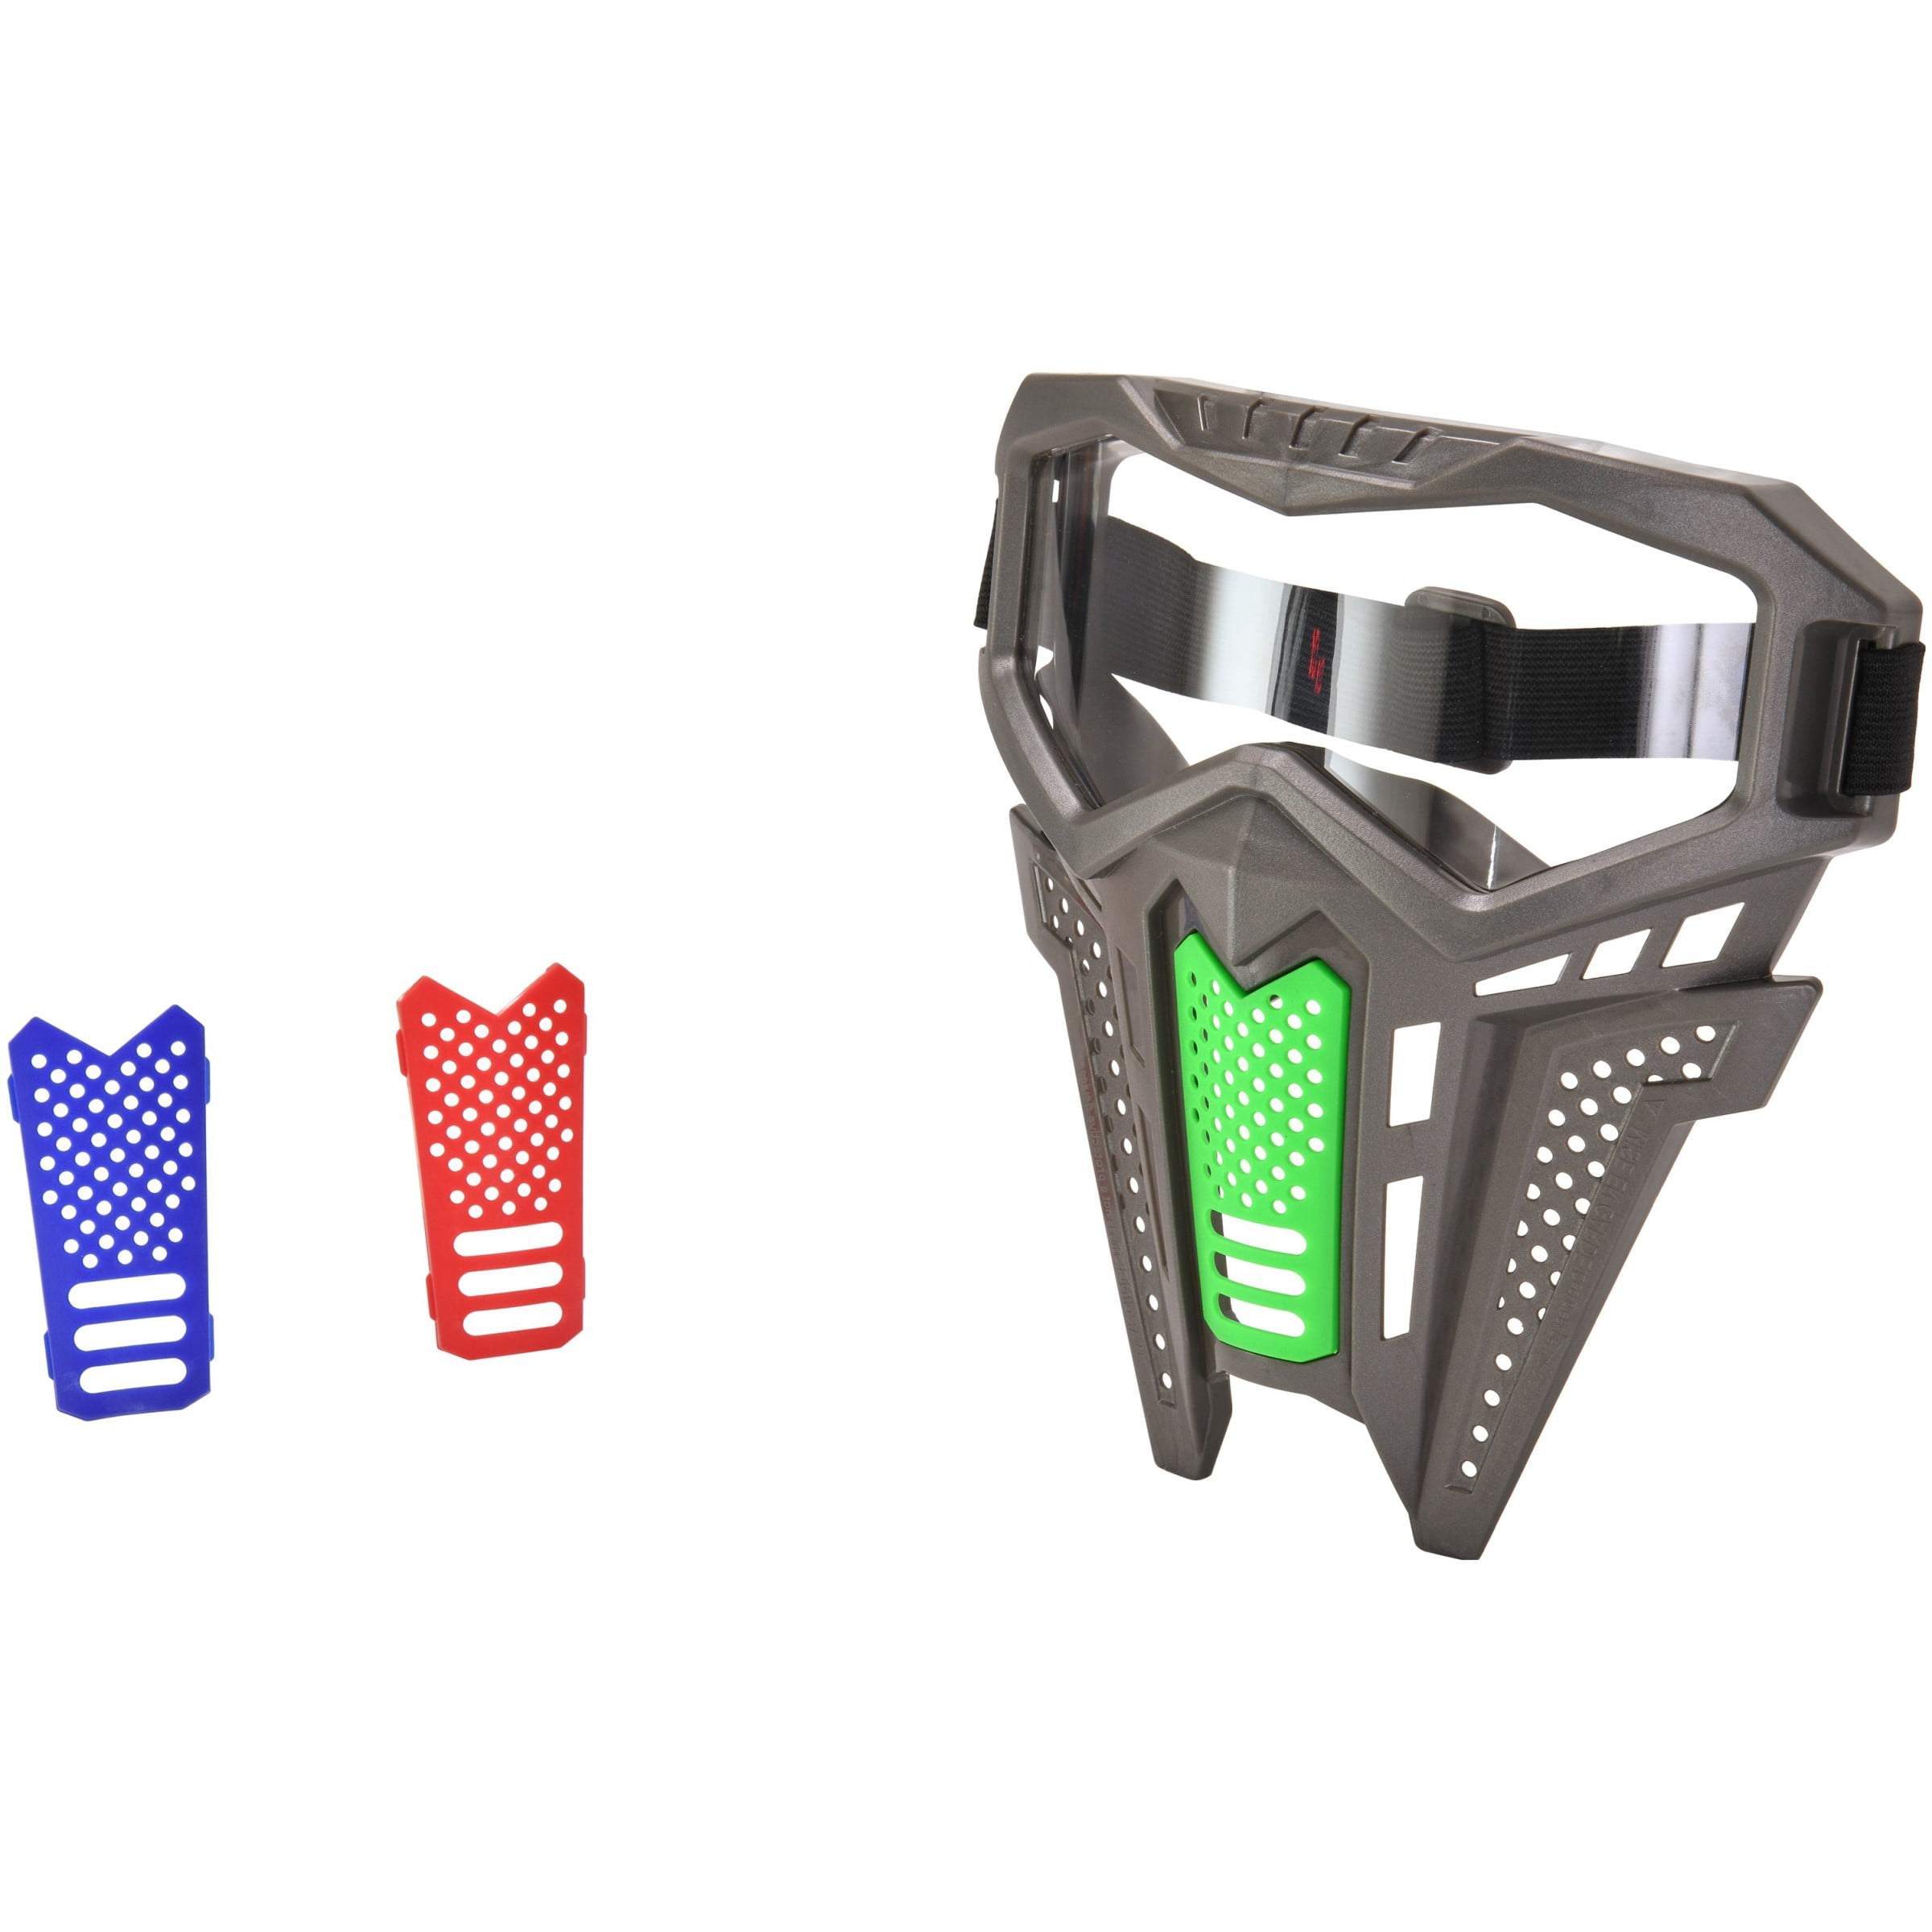 Adventure Force Tactical Strike Tactical Gear Team Competition Mask